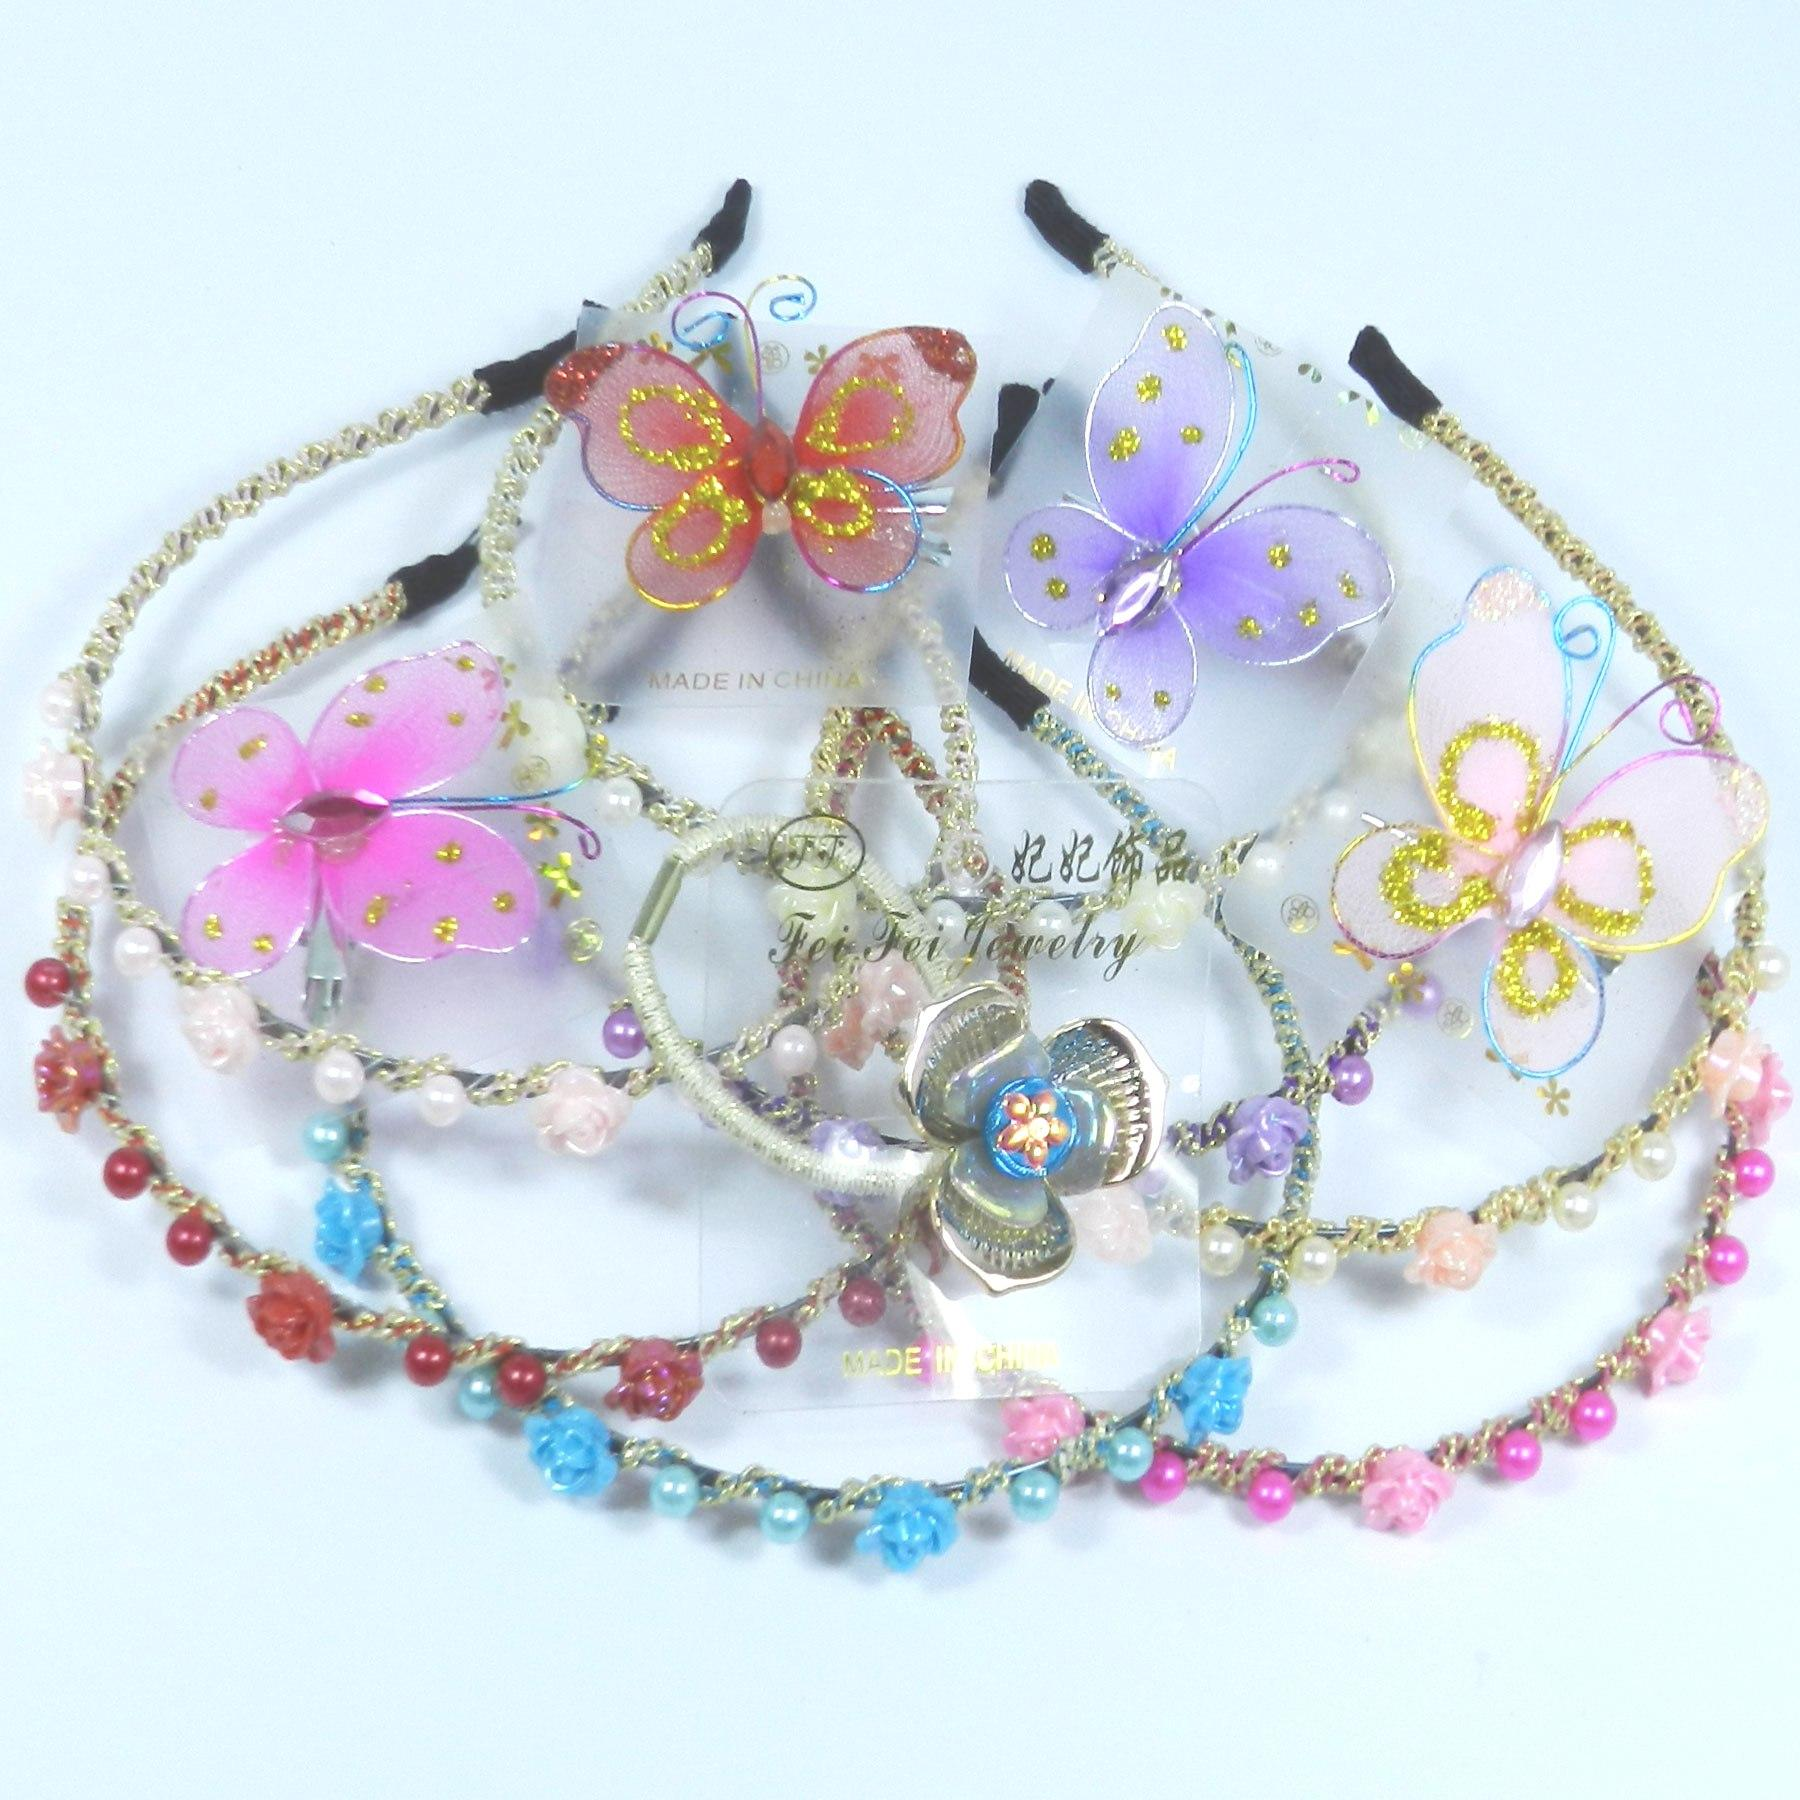 bacf8749b7 Girls Fancy Roses Pearl Head-Band Butterfly Brooch Beautiful Multi-Color  Bridal Flowers Crown